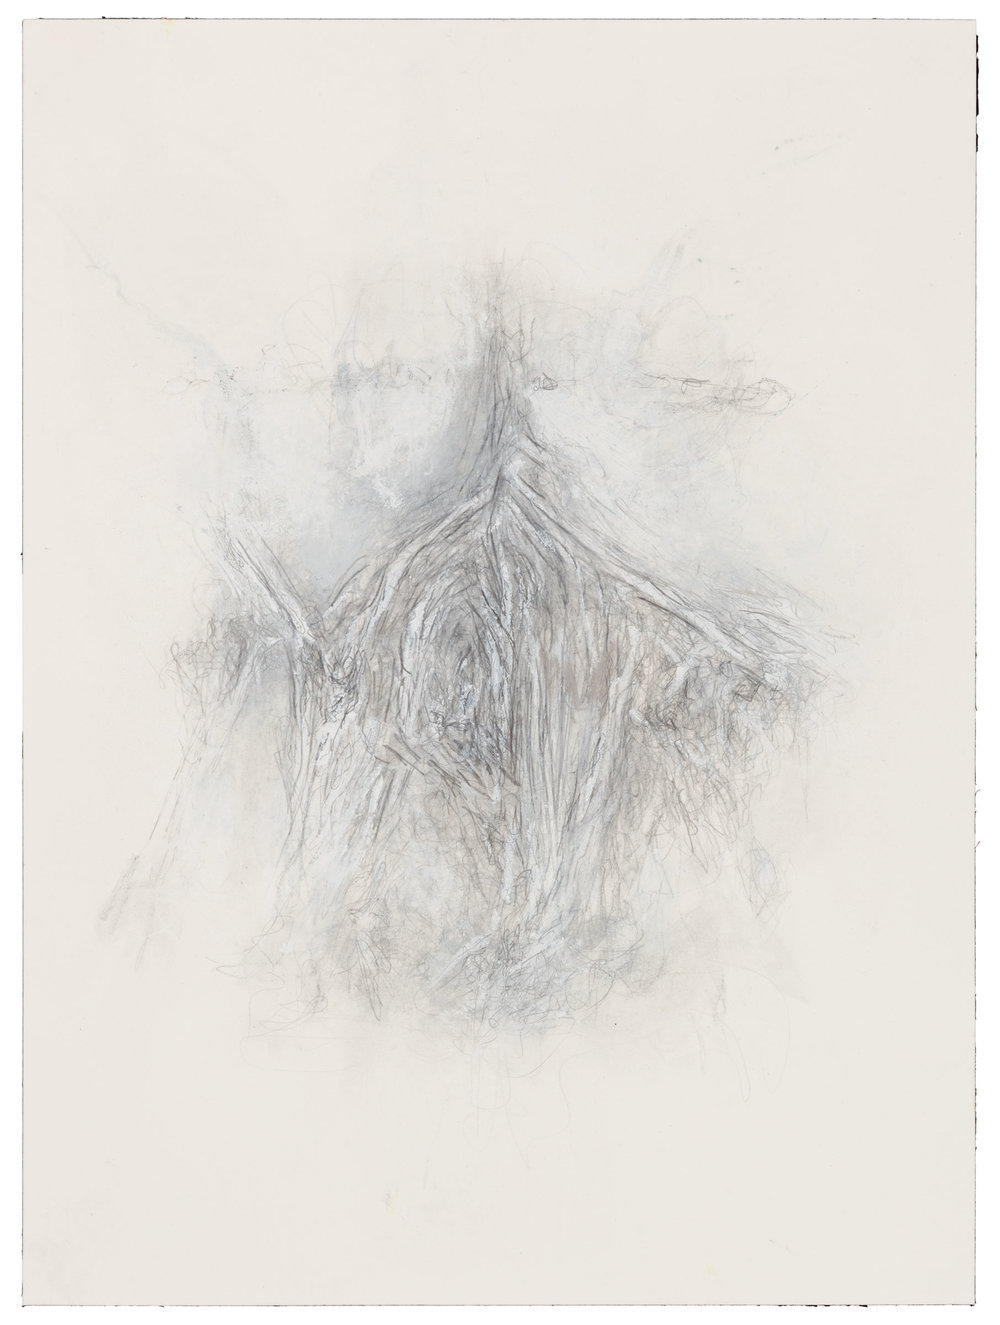 Hedda Sterne,  Untitled (August 13, 2001) , 2001, Mixed media on paper, 12 1/4 in. x 9 1/8 in. (31.12 cm x 23.18 cm)